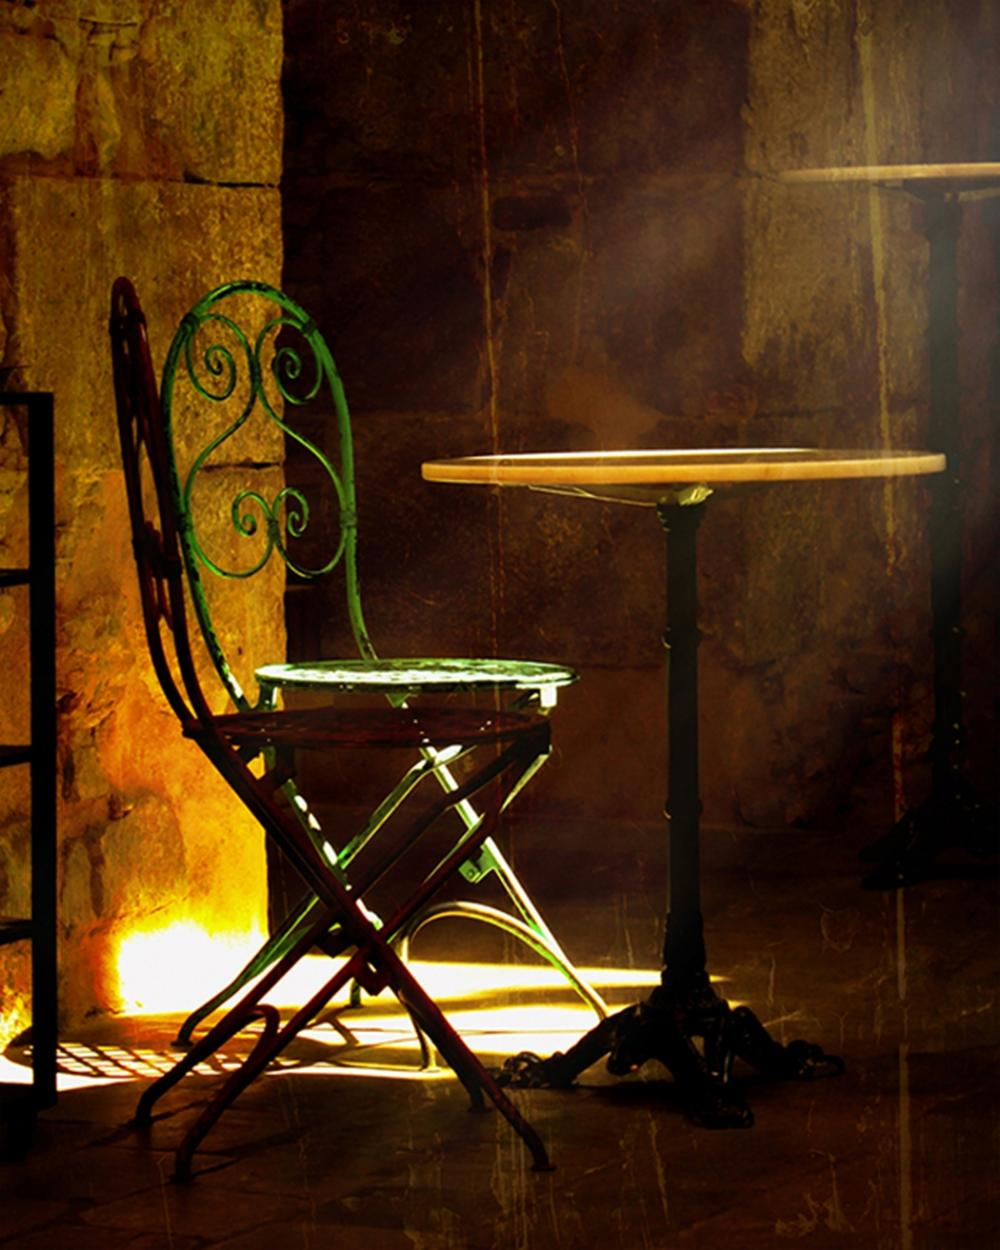 Hal Halli - Chairs In Light